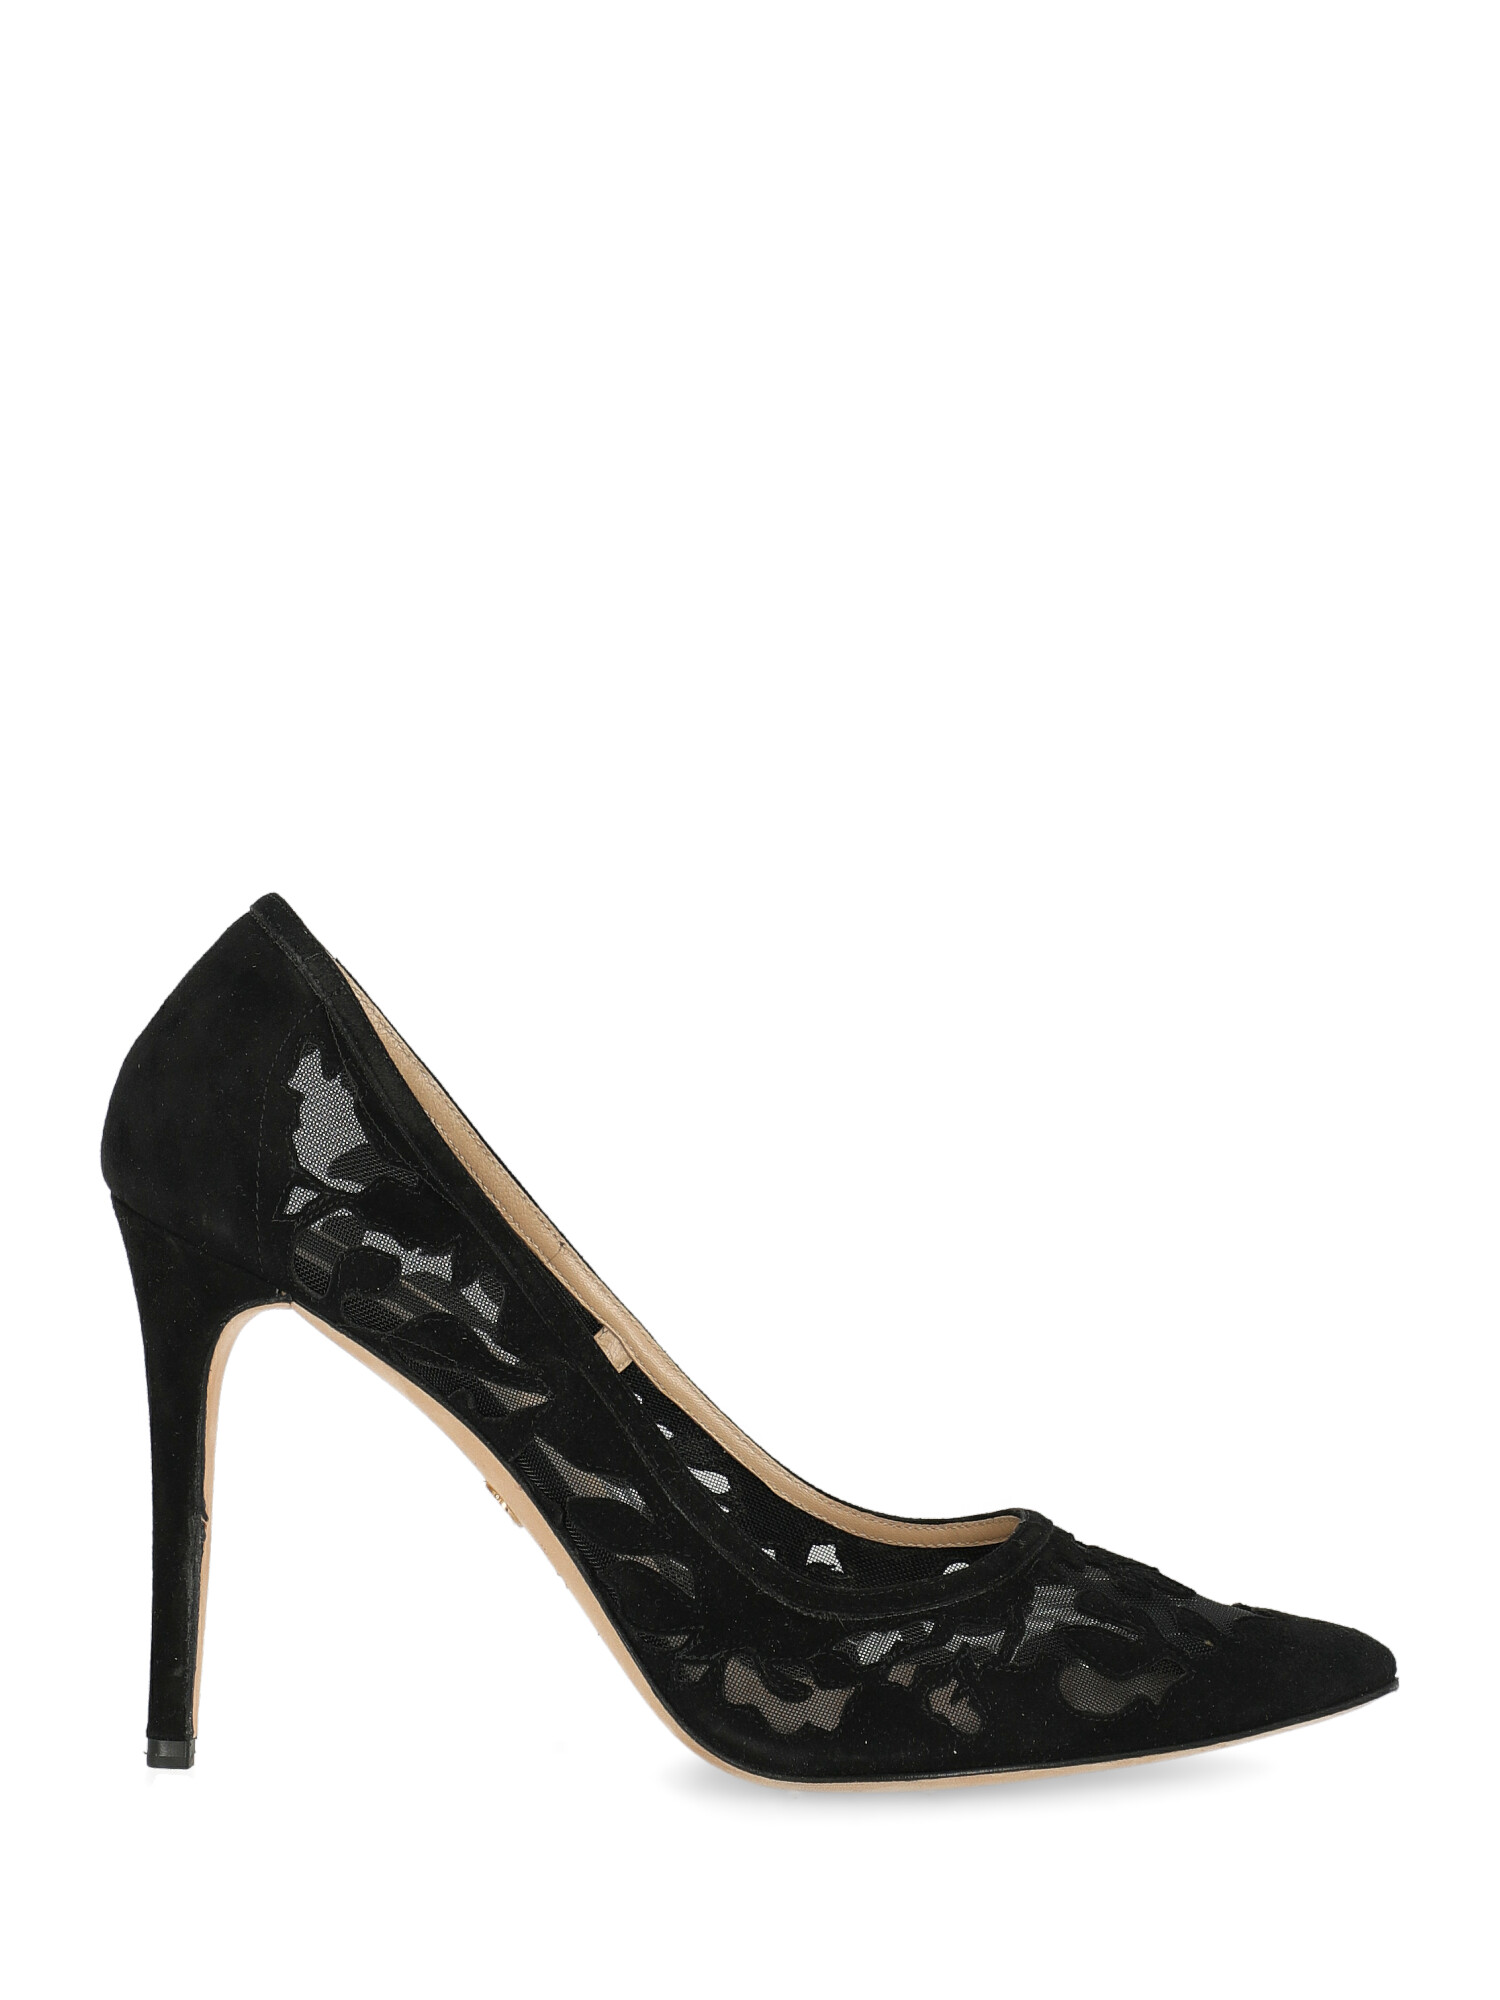 Pre-owned Elie Saab Shoe In Black